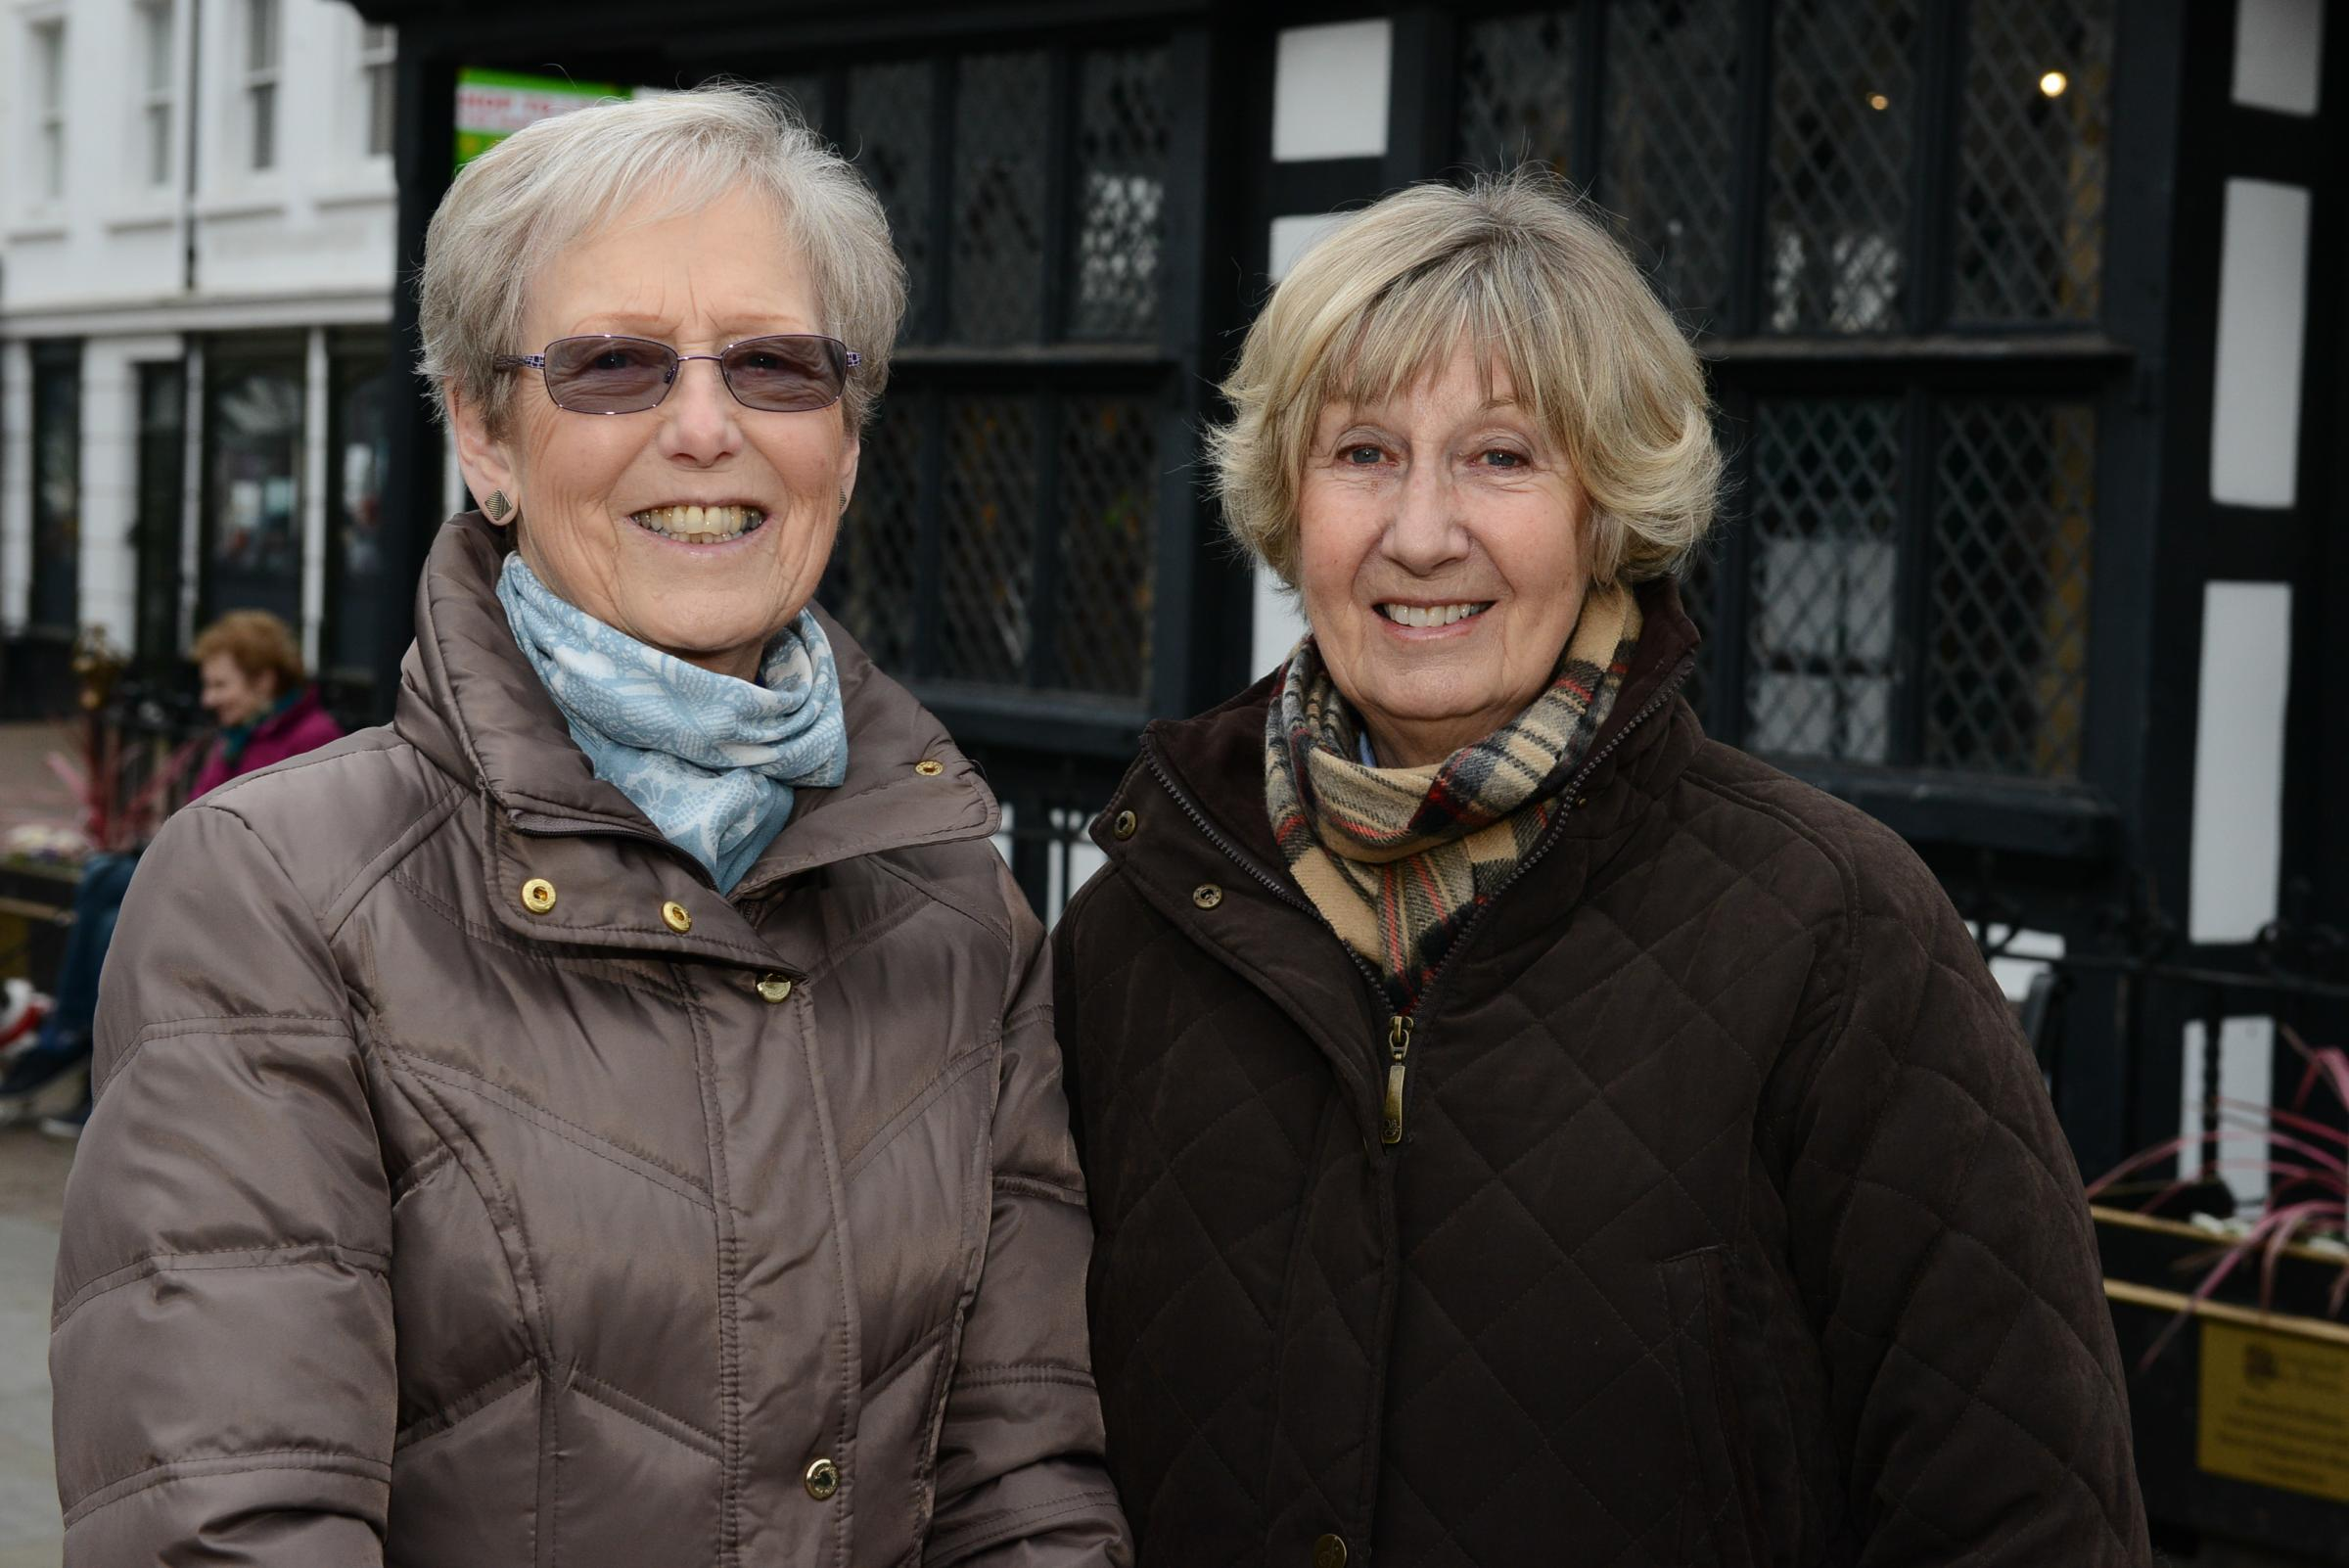 Hereford Times competition winners Barbara Passey & Elizabeth Roberts.